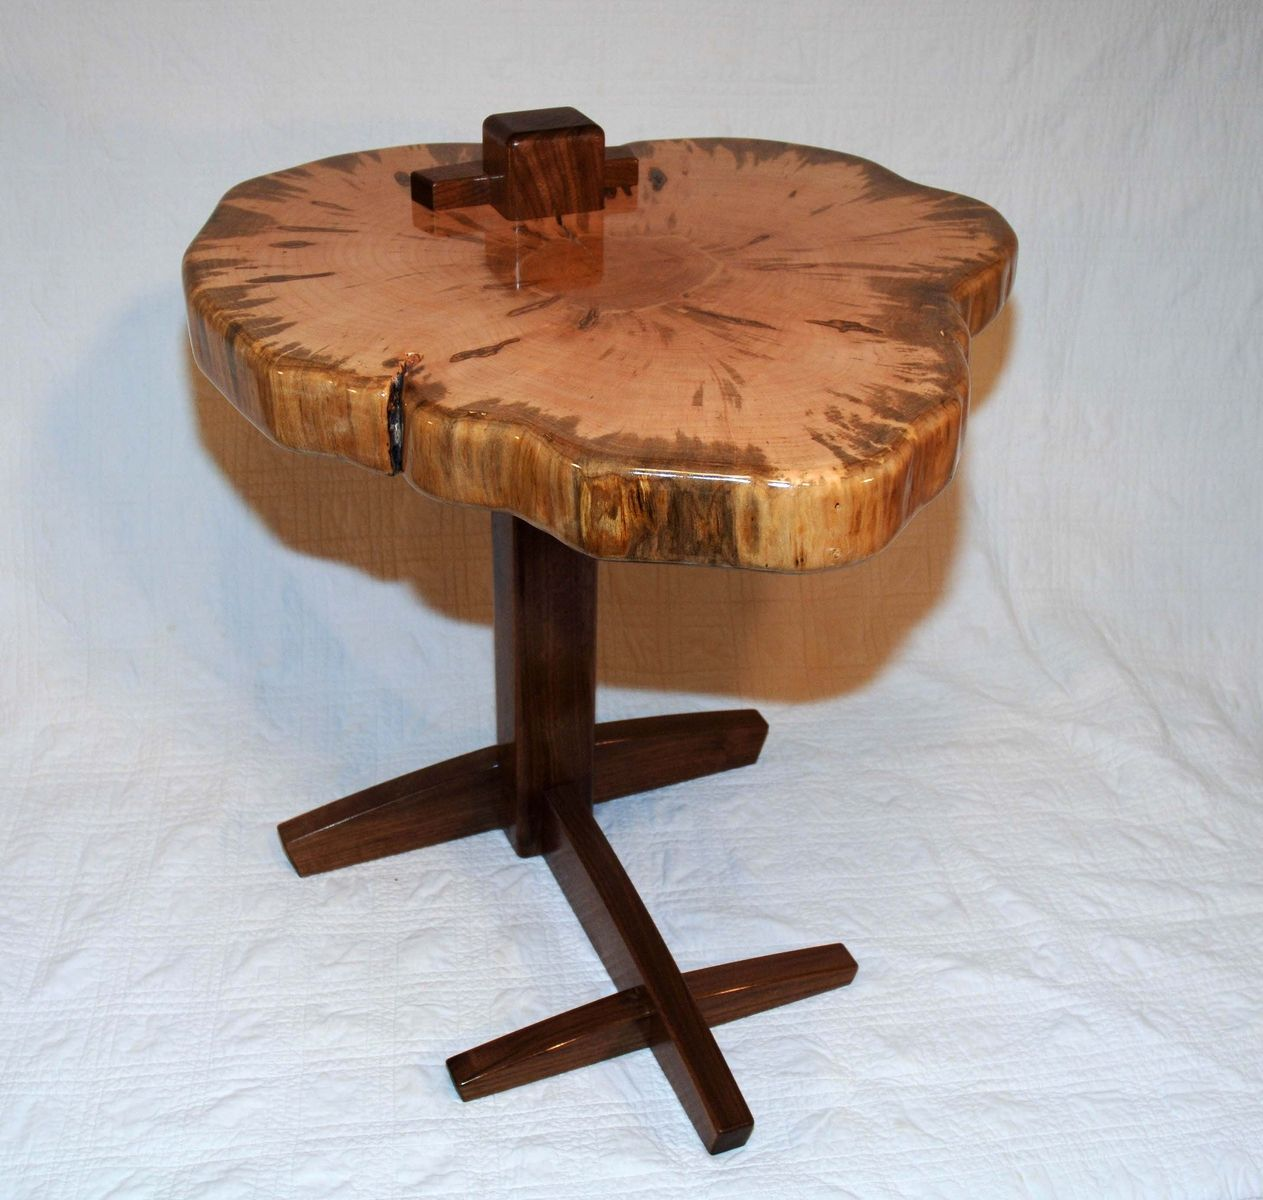 hand crafted maple slab side table natural mystic woodwork wood accent custom made black half moon tiffany style lamp nesting end tables living room coffee house hall decoration